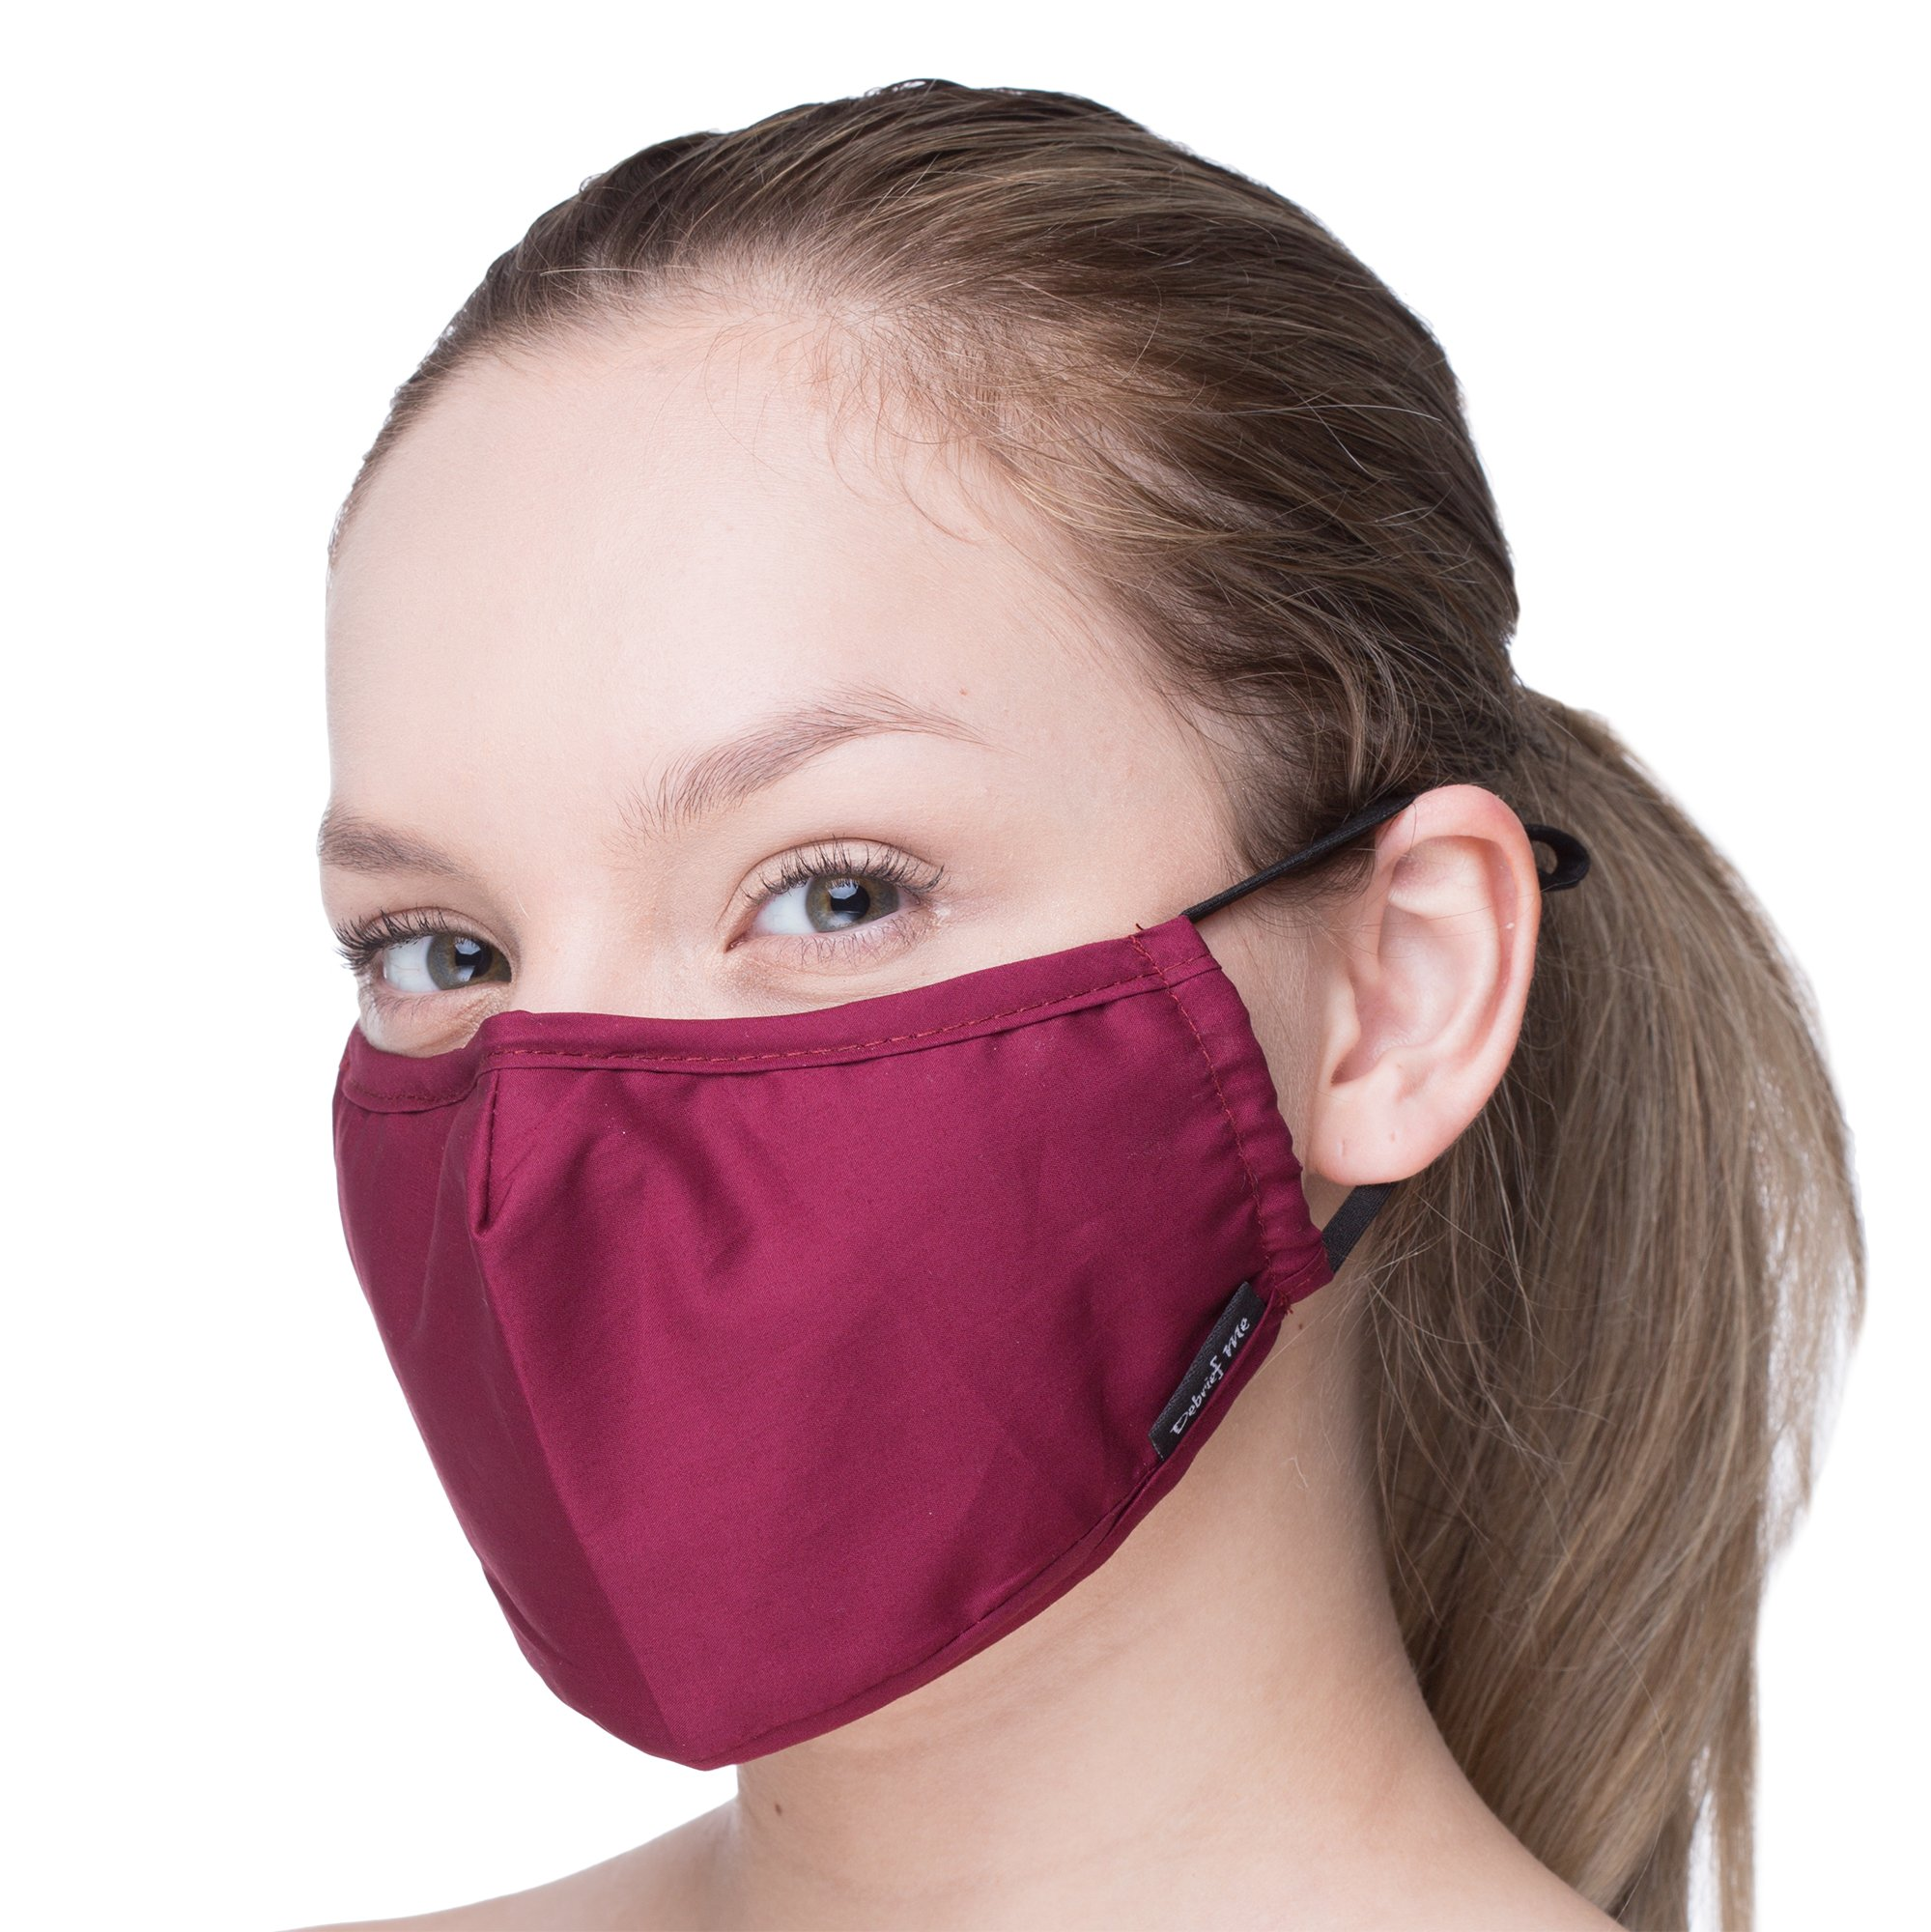 Anti Dust Face Mouth Cover Mask Respirator - Dustproof Anti-bacterial Washable - Reusable masks Respirator Comfy - Cotton Germ Protective Breath Healthy Safety Warm Windproof Mask (Burgundy Red)